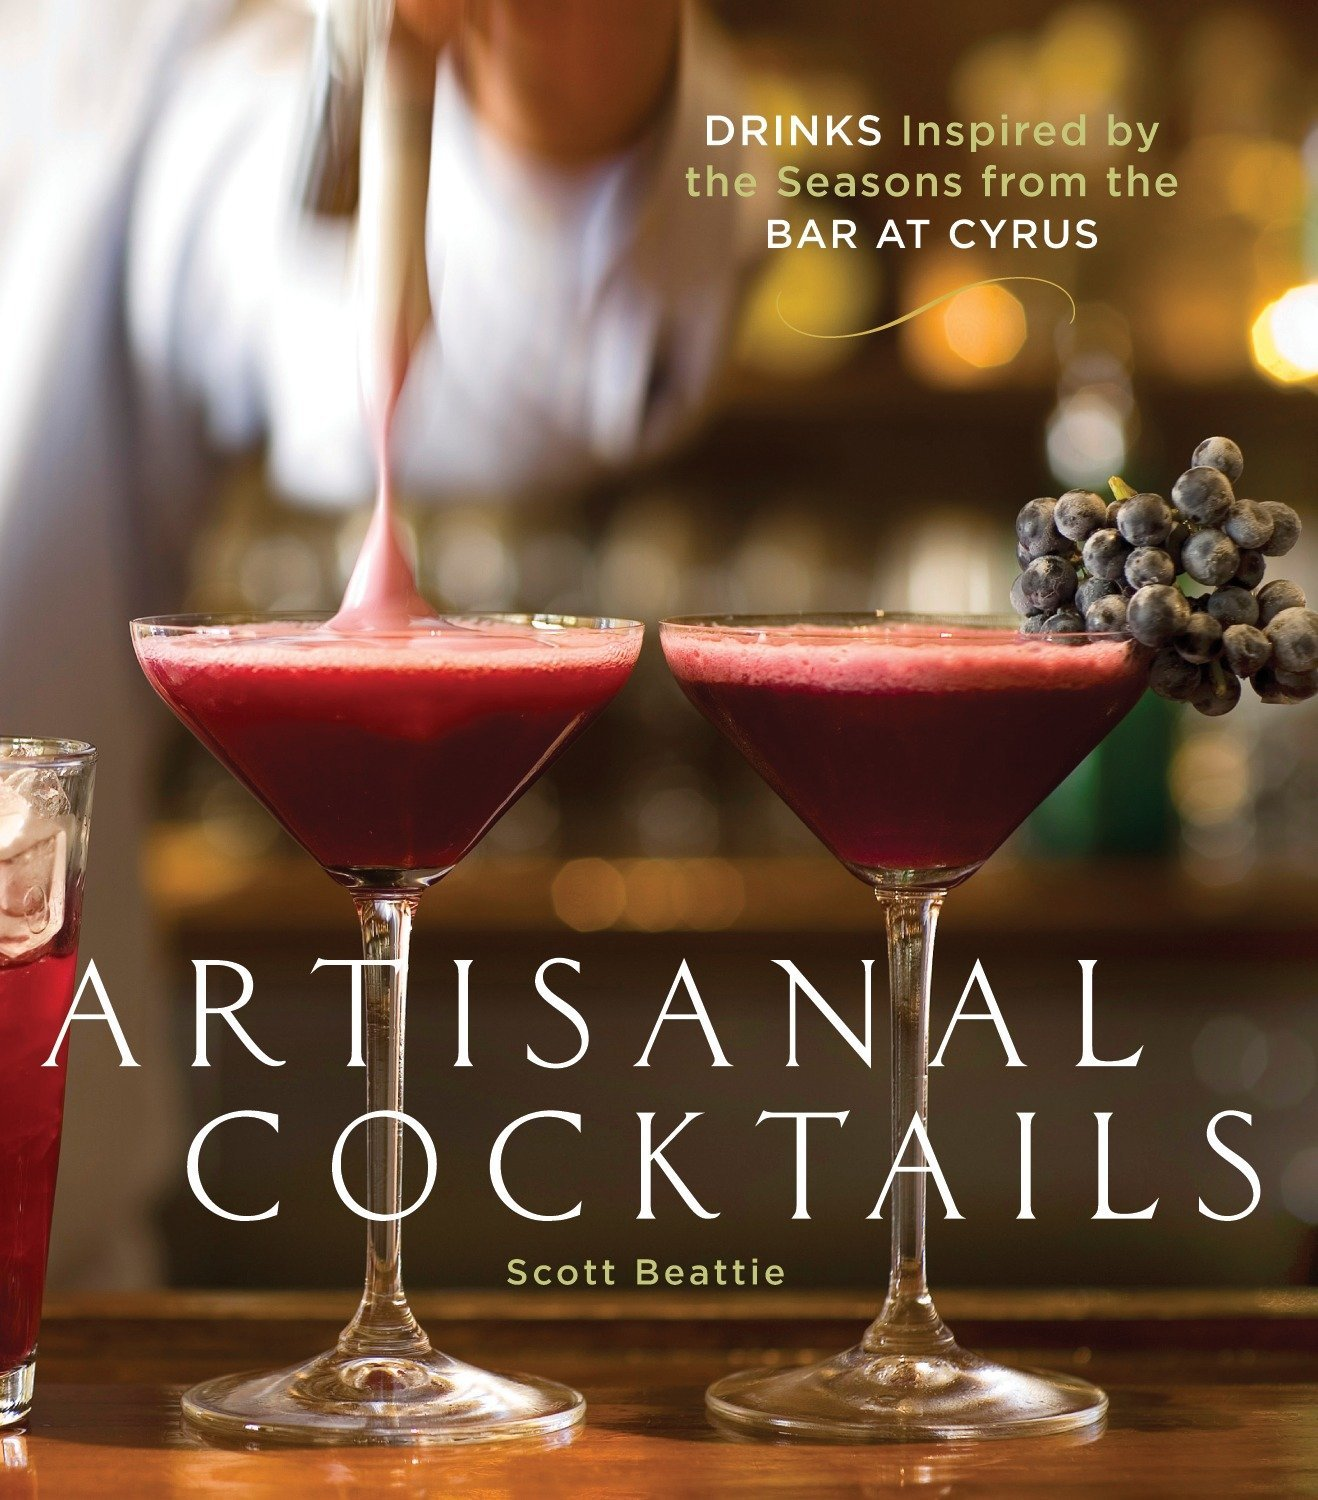 artisanal cocktails book cover